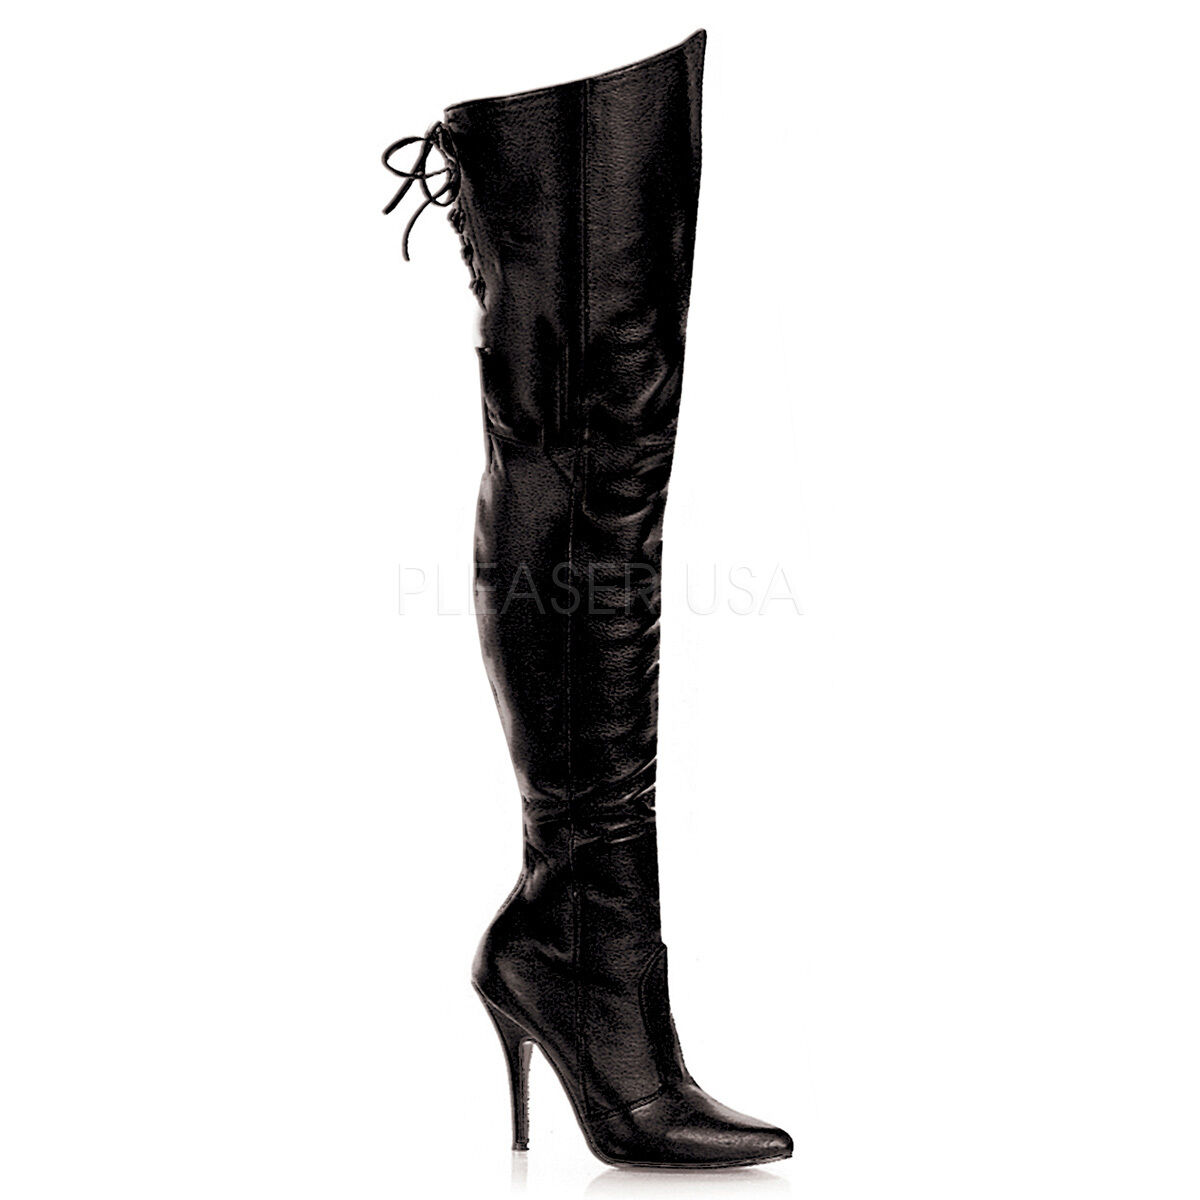 PLEASER Sexy 5  Heel Rear Lacing Black Leather Thigh High Boots LEG8899 B LE